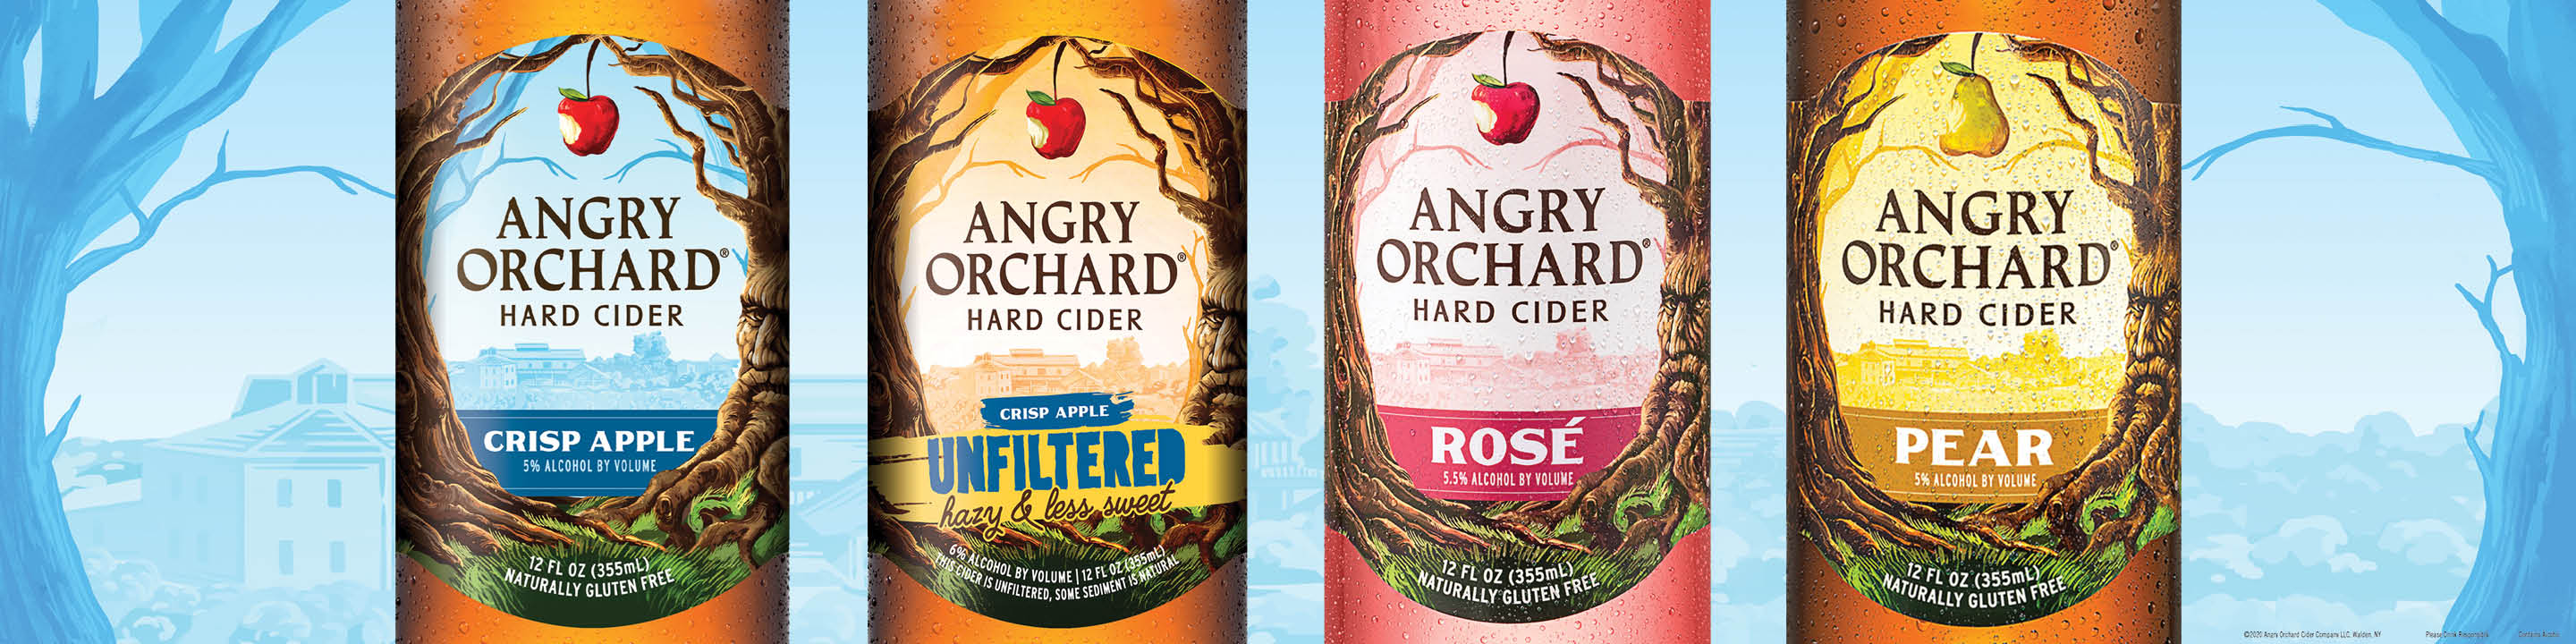 Angry Orchard Hard Ciders are crafted in the heart of the Hudson Valley.  We are committed to bringing traditional cider varieties and lost heirloom varieties back to the United States. As such, certain areas of the orchard are designated for new cider apple plantings and varietal research, in collaboration with local institutions and growers.